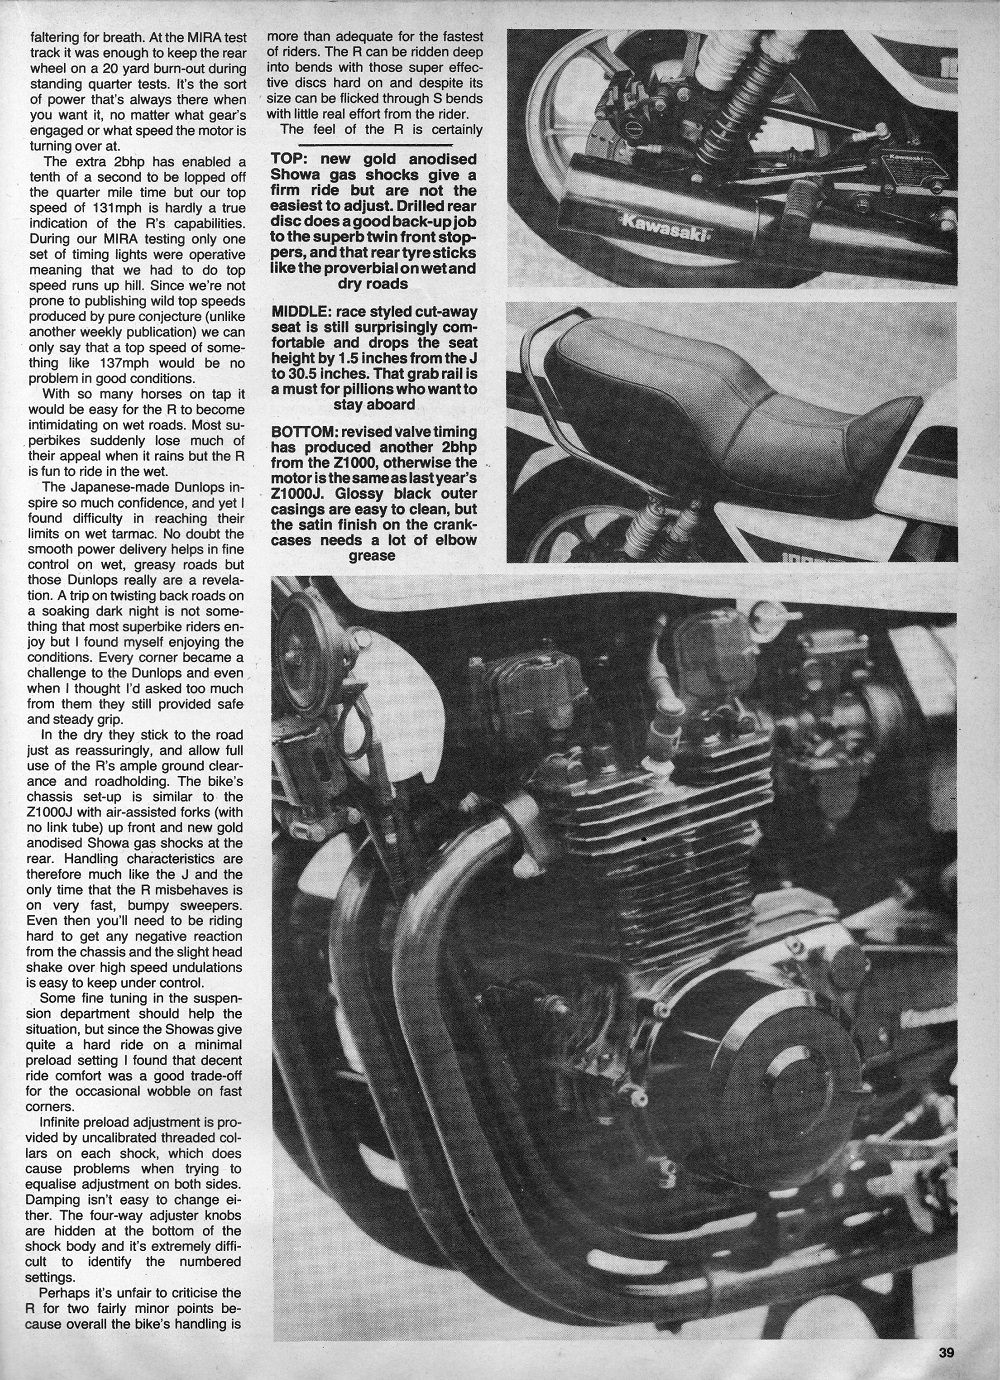 1983 Kawasaki Z 1000R road test.3.jpg